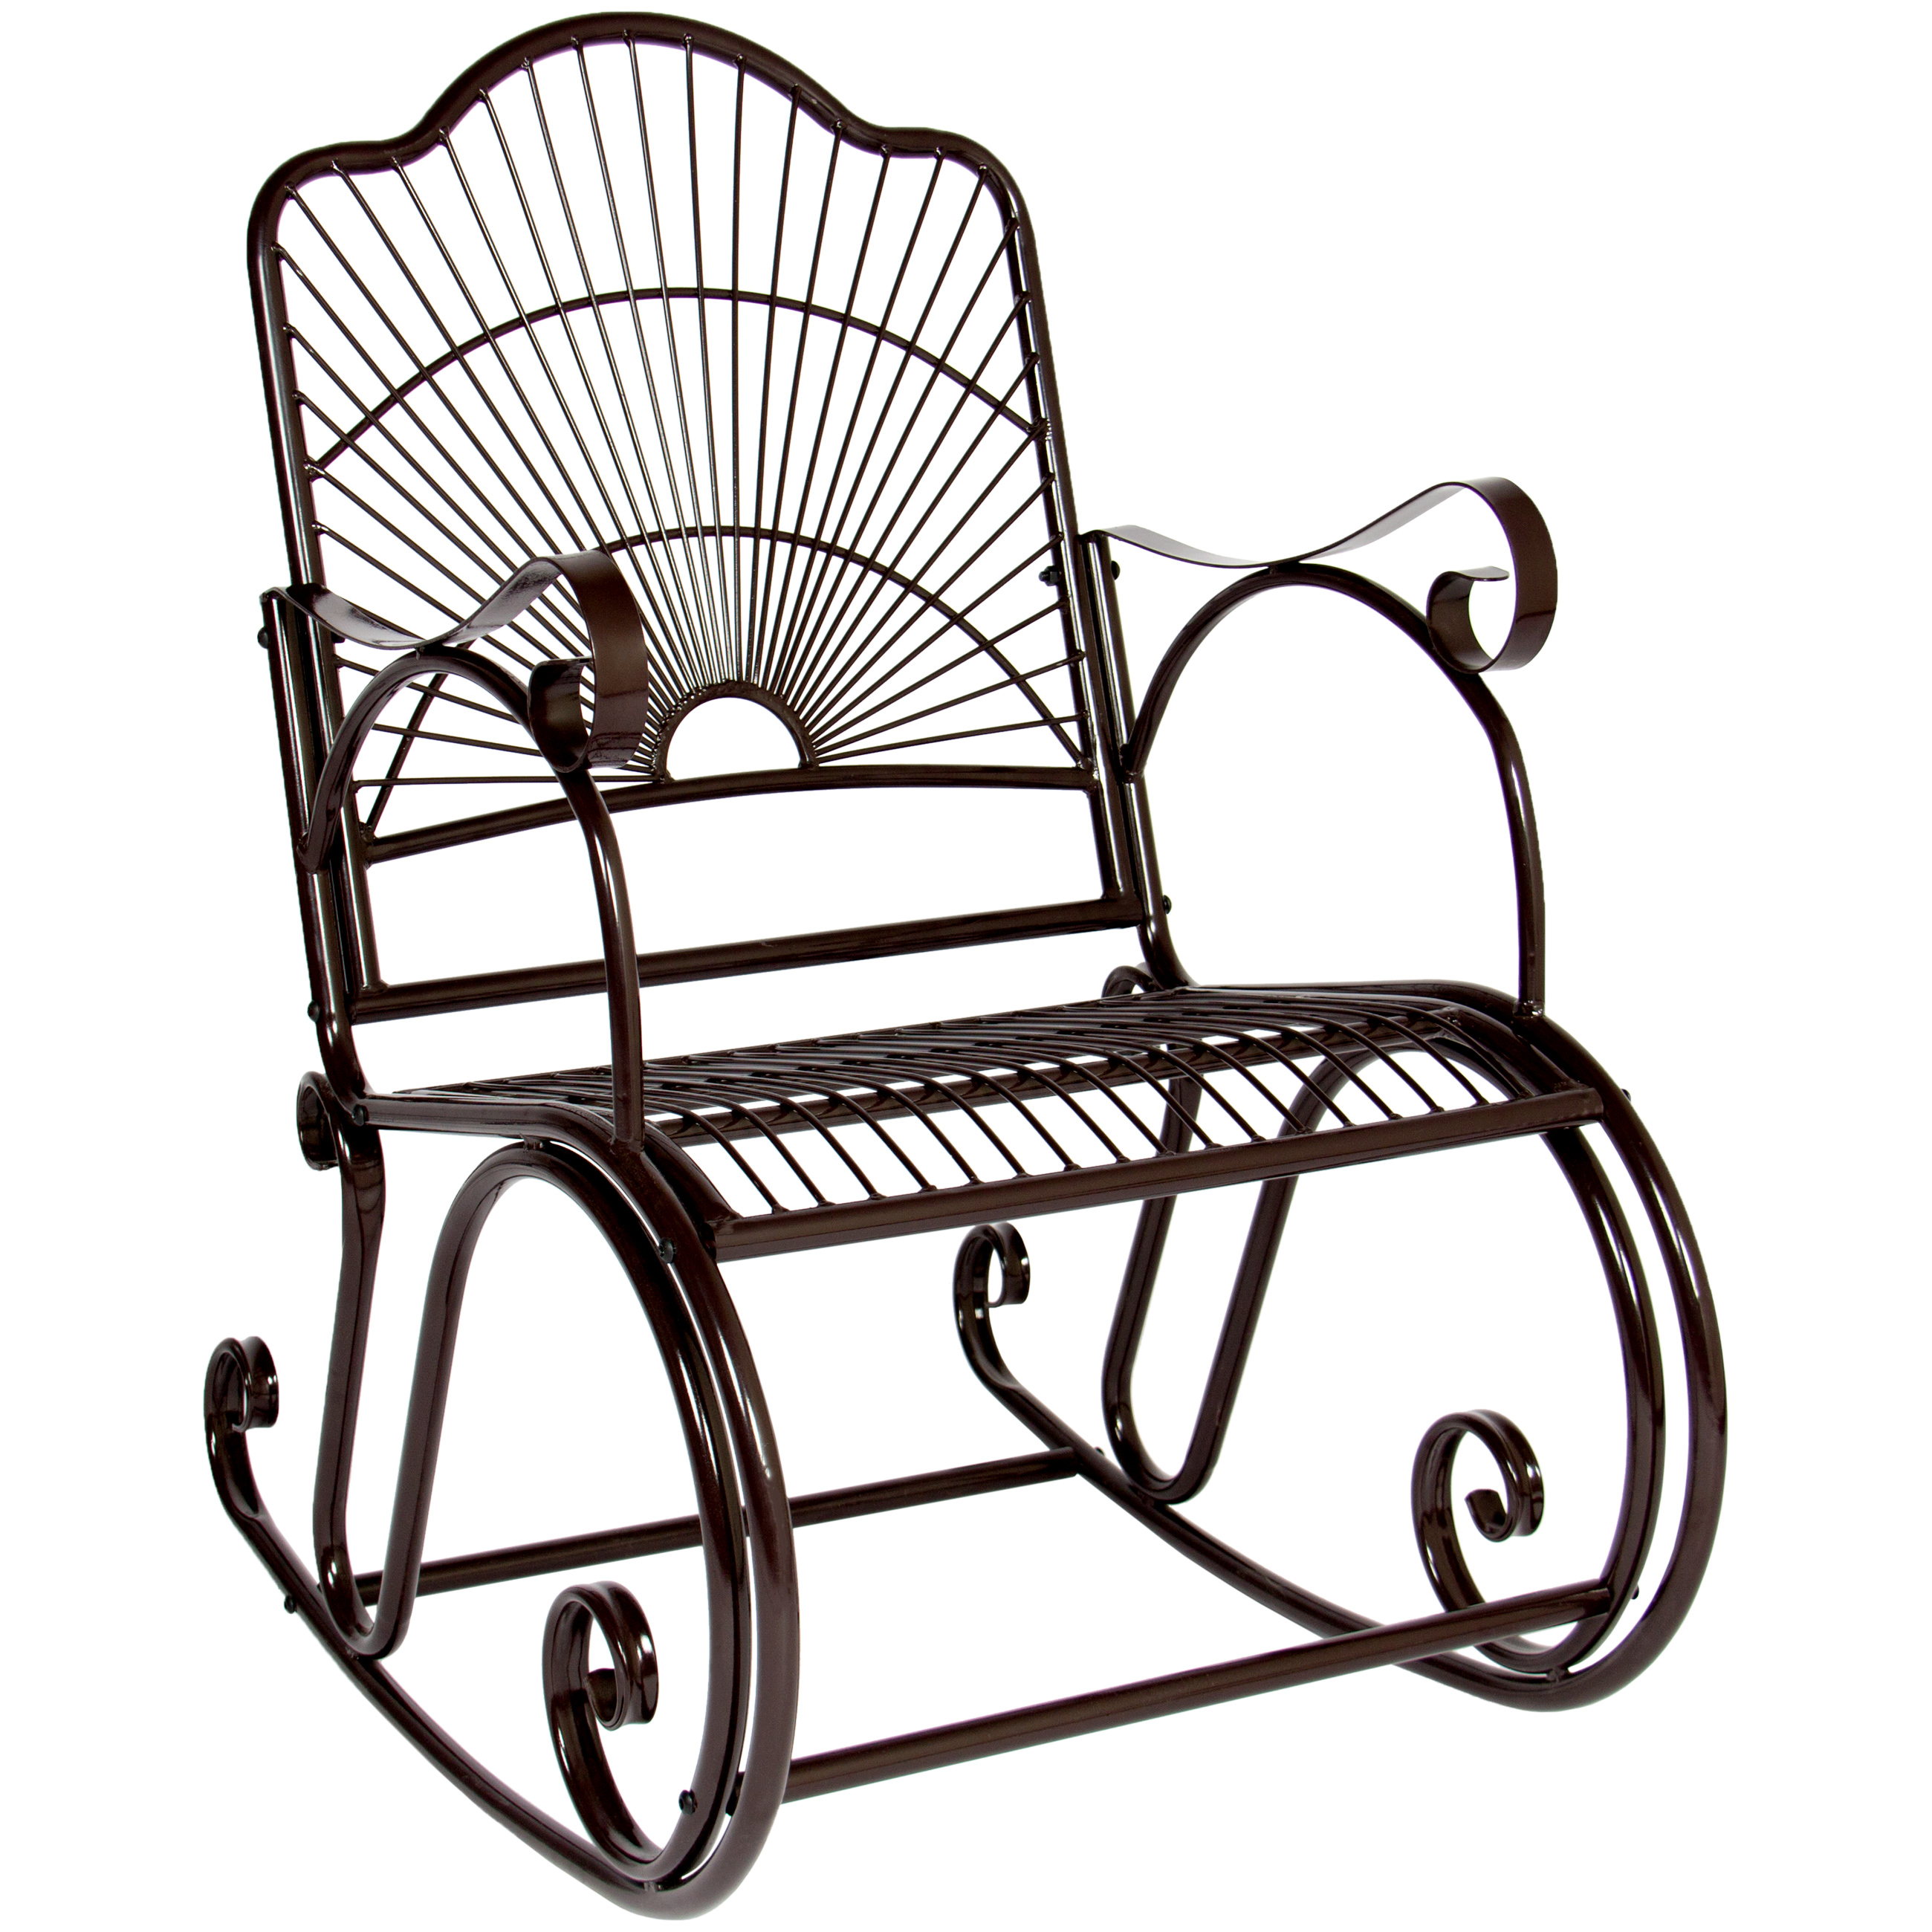 Best Choice Products BCP Patio Iron Scroll Porch Rocker Rocking Chair Outdoor Deck Seat Antique Style Backyard Glider